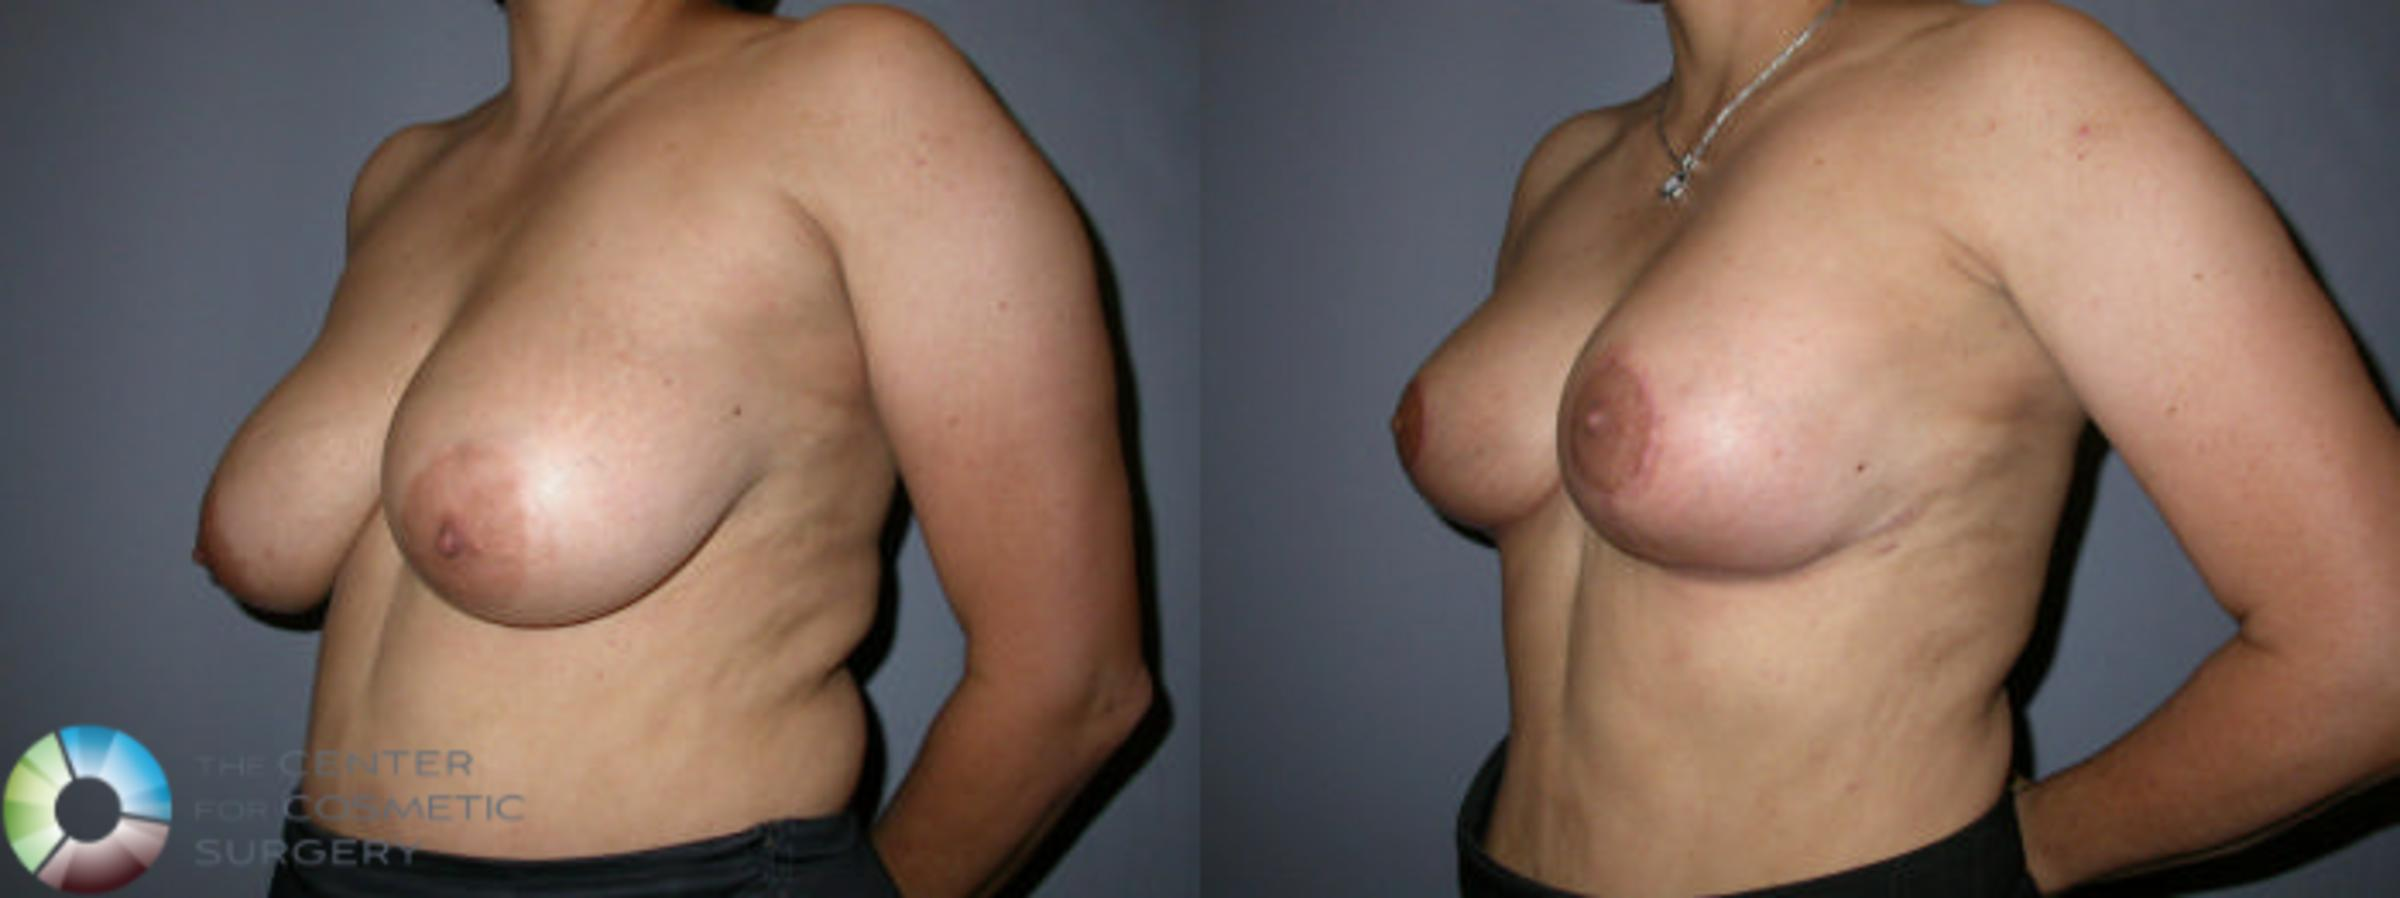 Breast Reduction Case 59 Before & After View #2 | Golden, CO | The Center for Cosmetic Surgery